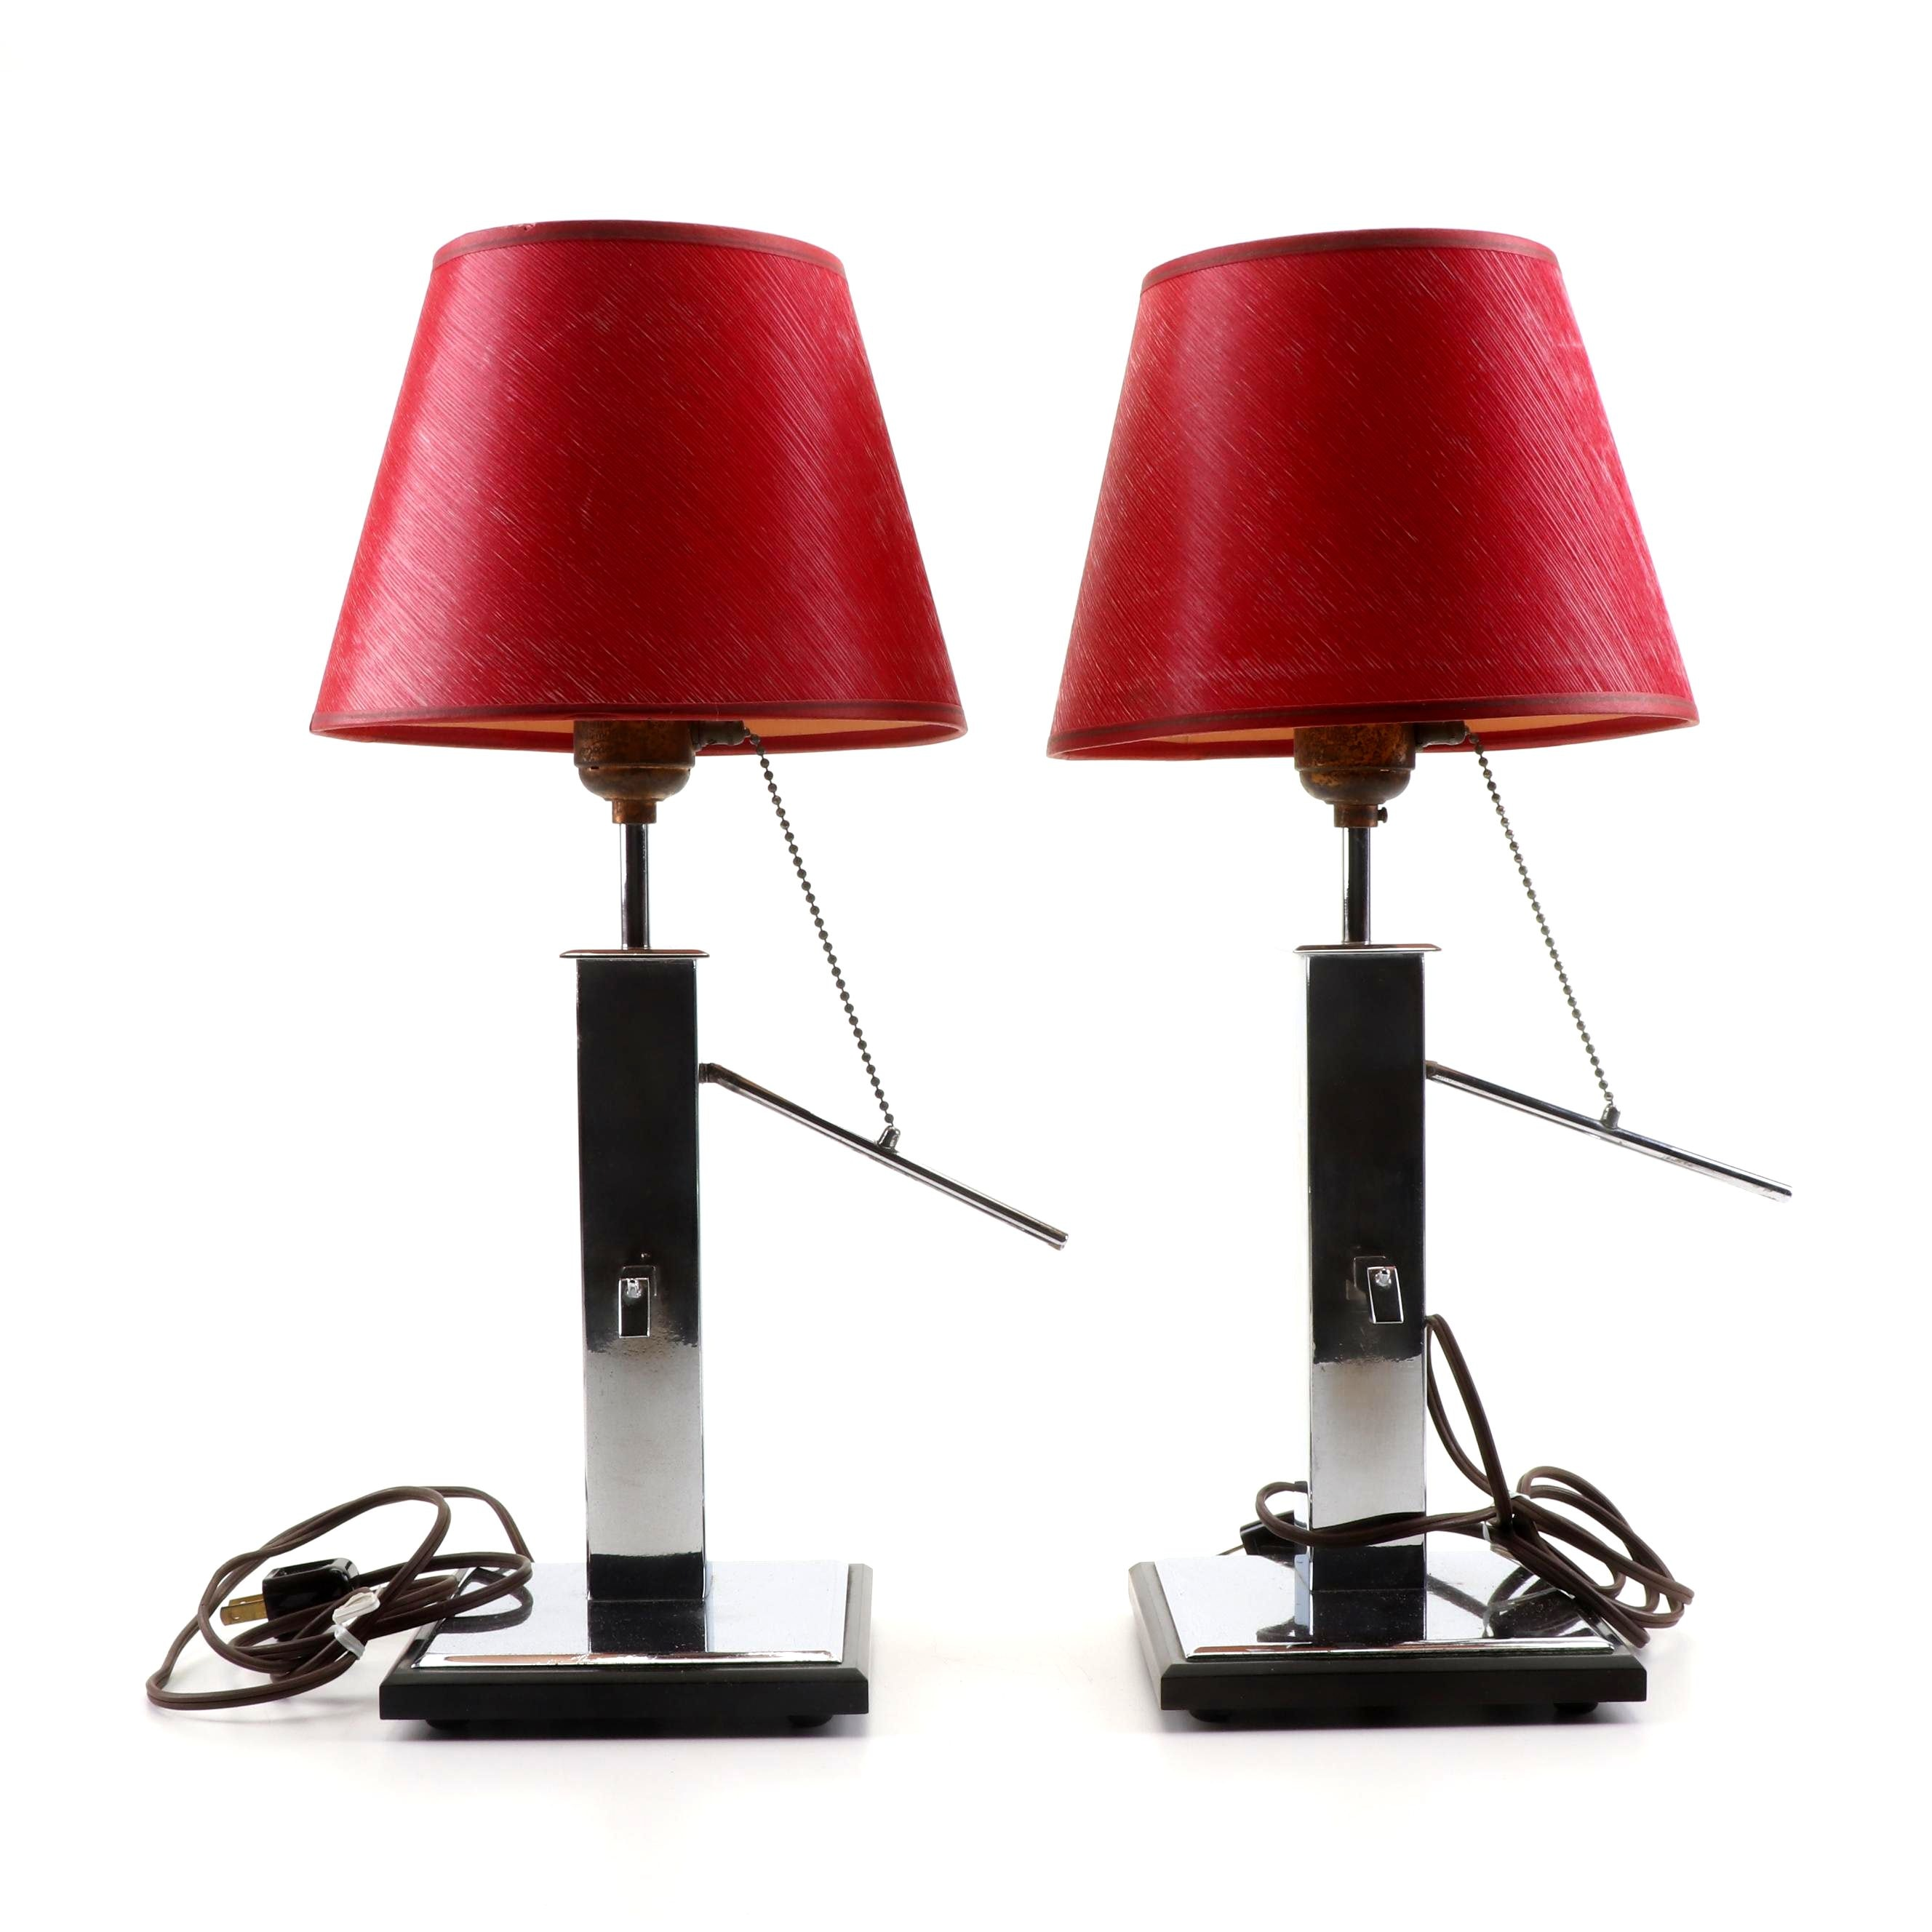 Chrome Mechanical Water Pump Form Table Lamps, Mid-Century